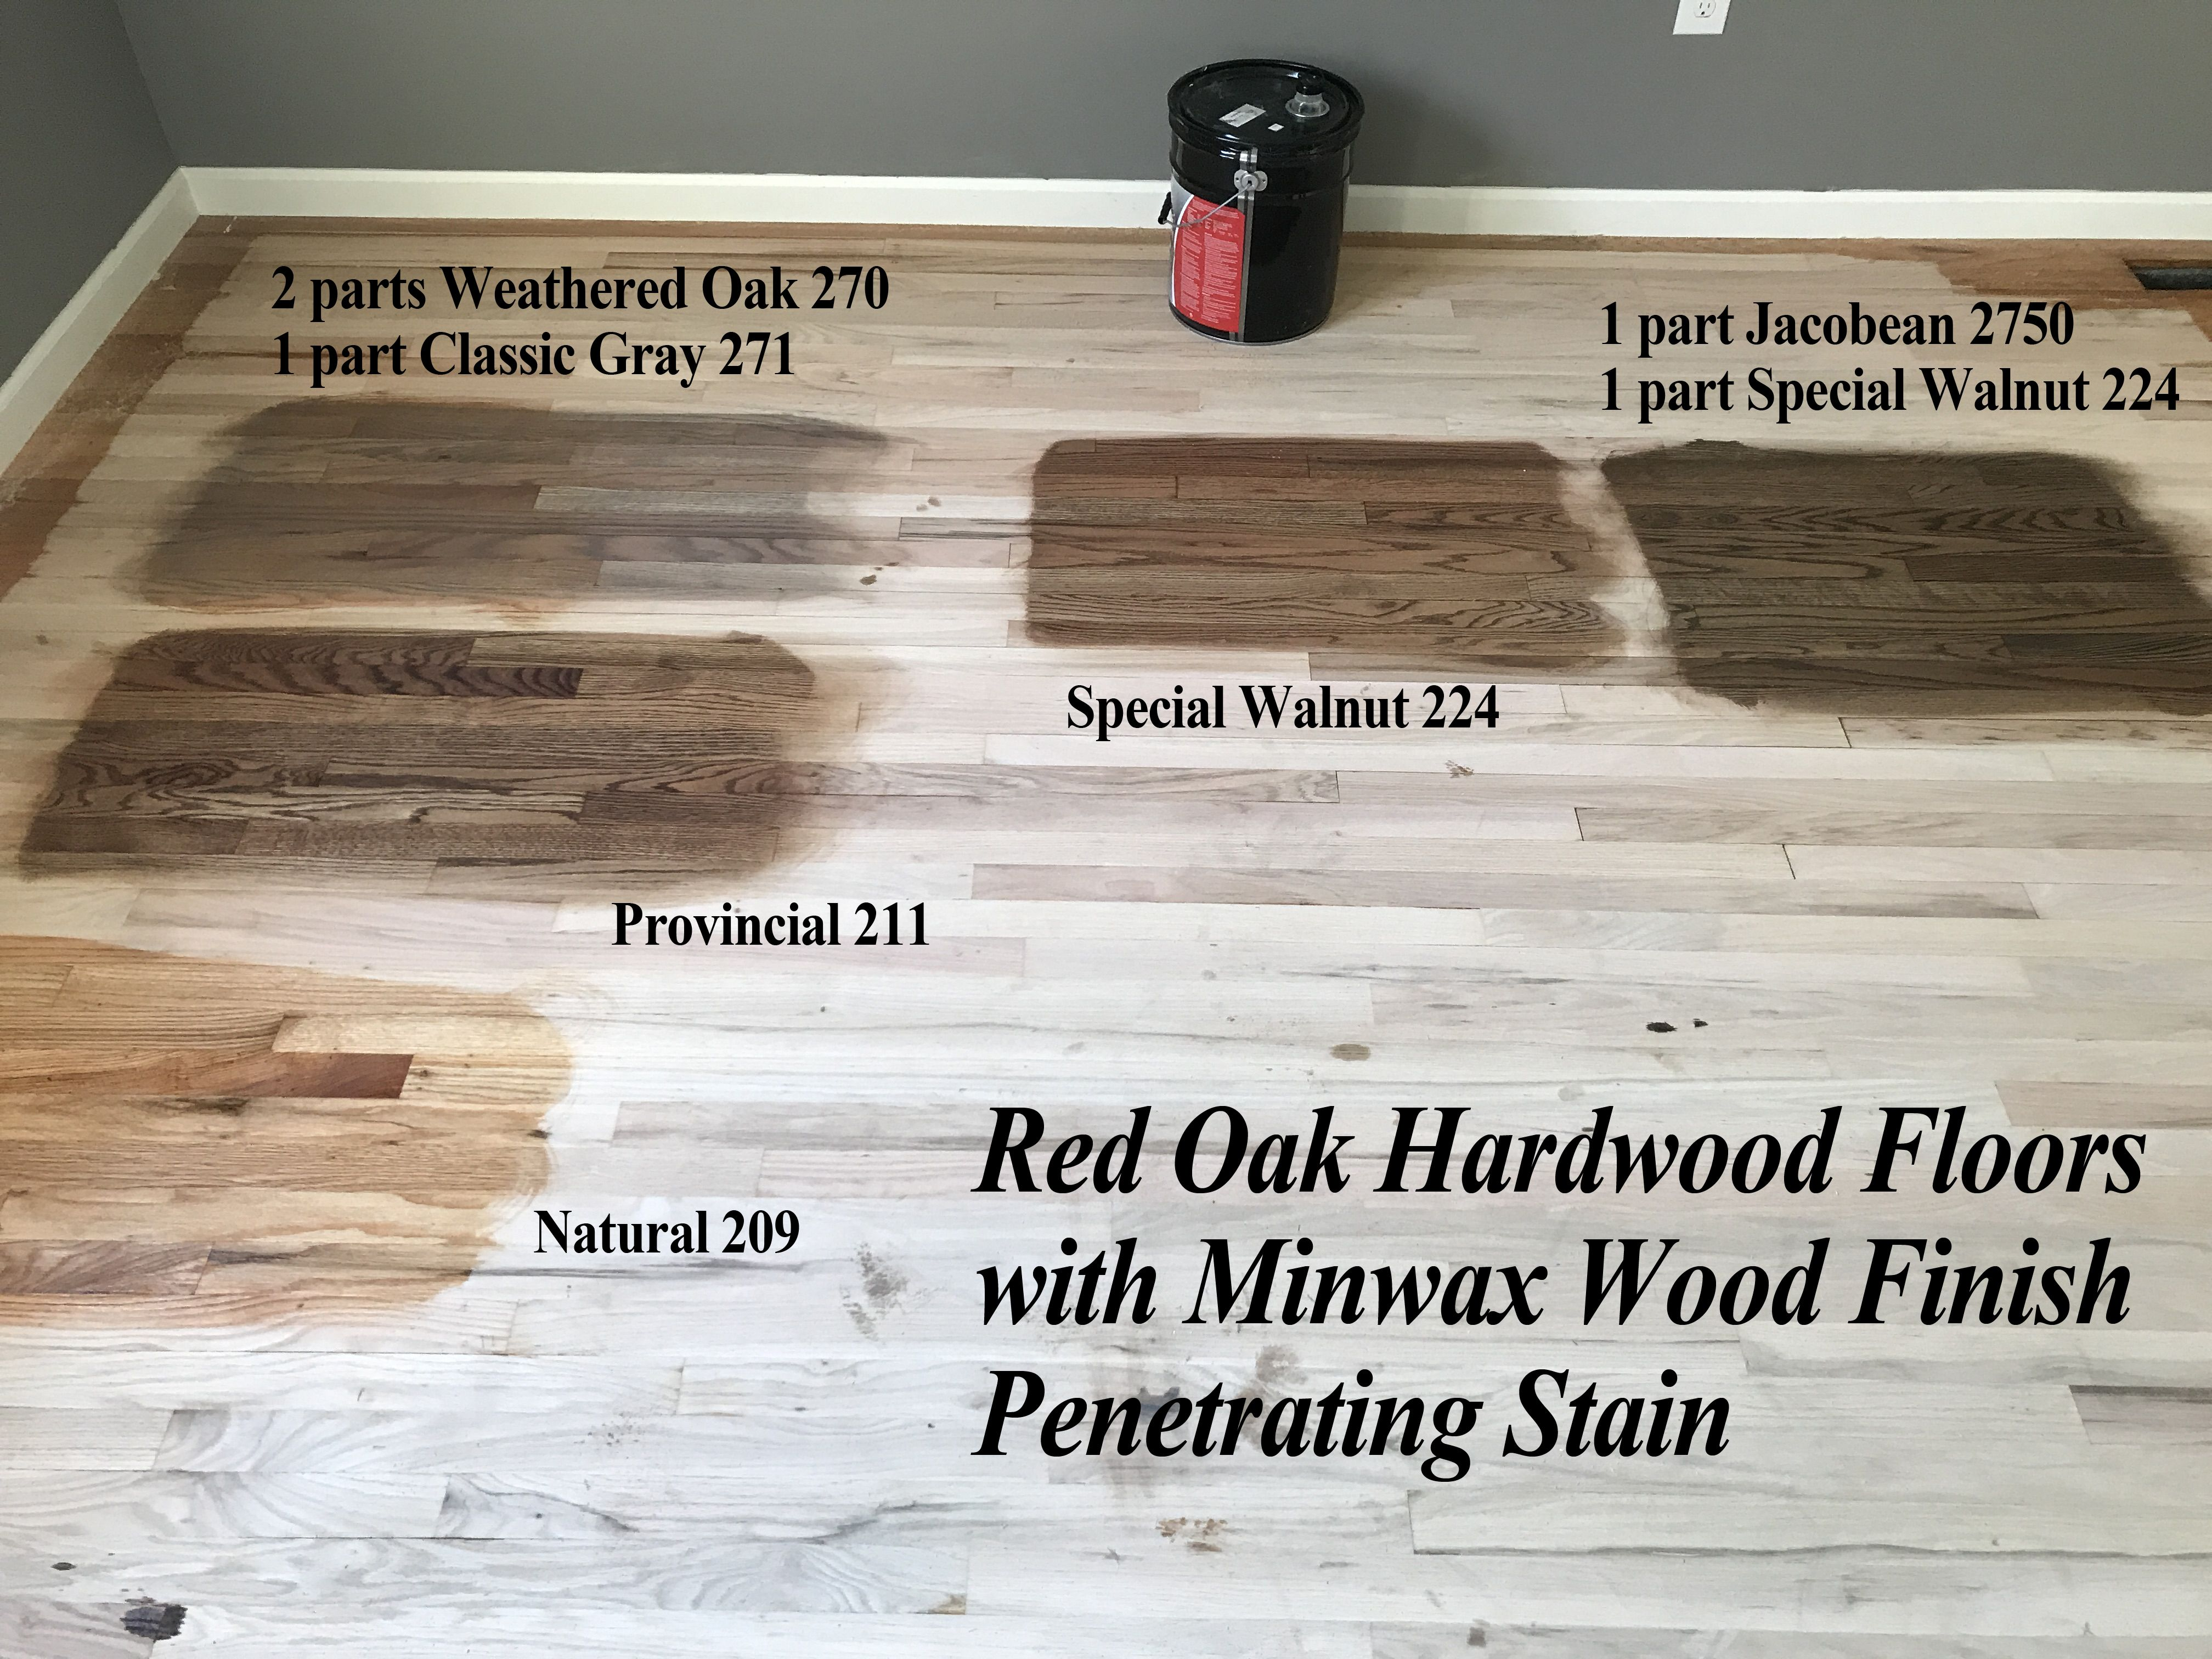 Red Oak Hardwood Floor Stains Using Minwax Wood Finish